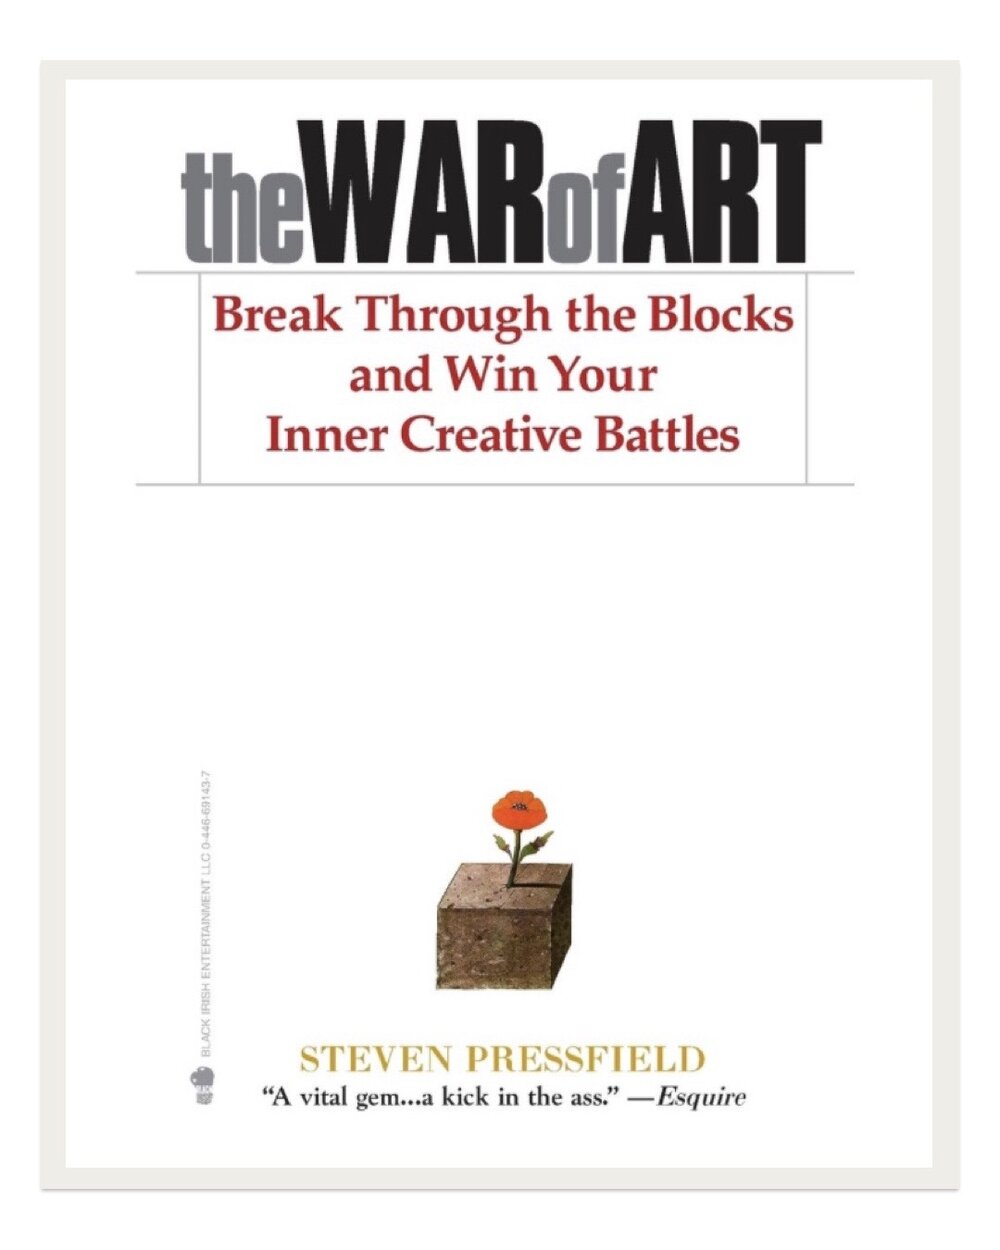 Another favorite amongst all types of artists, this book discusses breaking through barriers to get past creative blocks and into creative freedom.